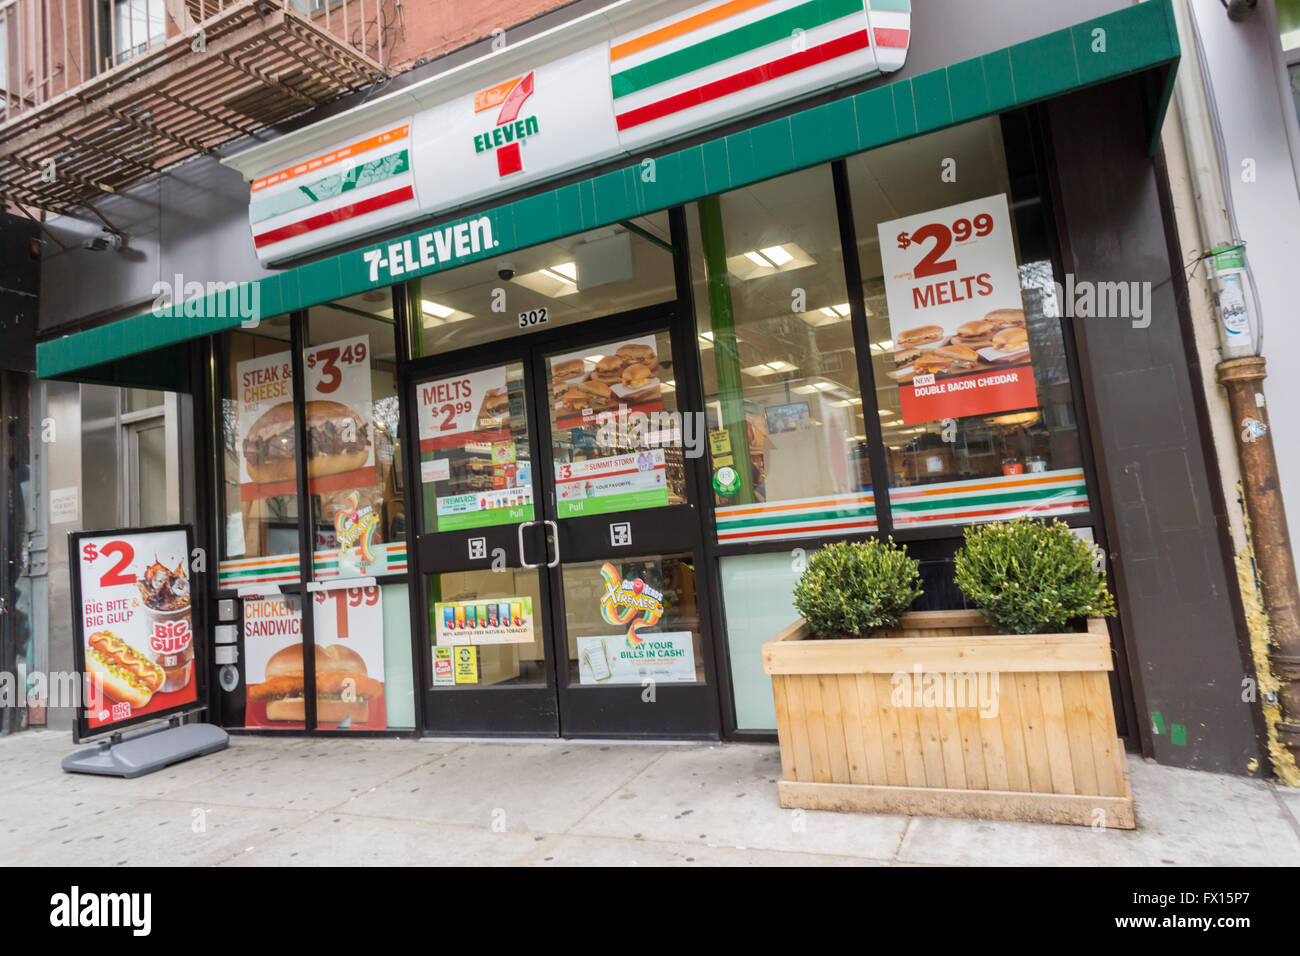 Stock Photo A 7 Eleven Convenience Store In New York On Thursday April